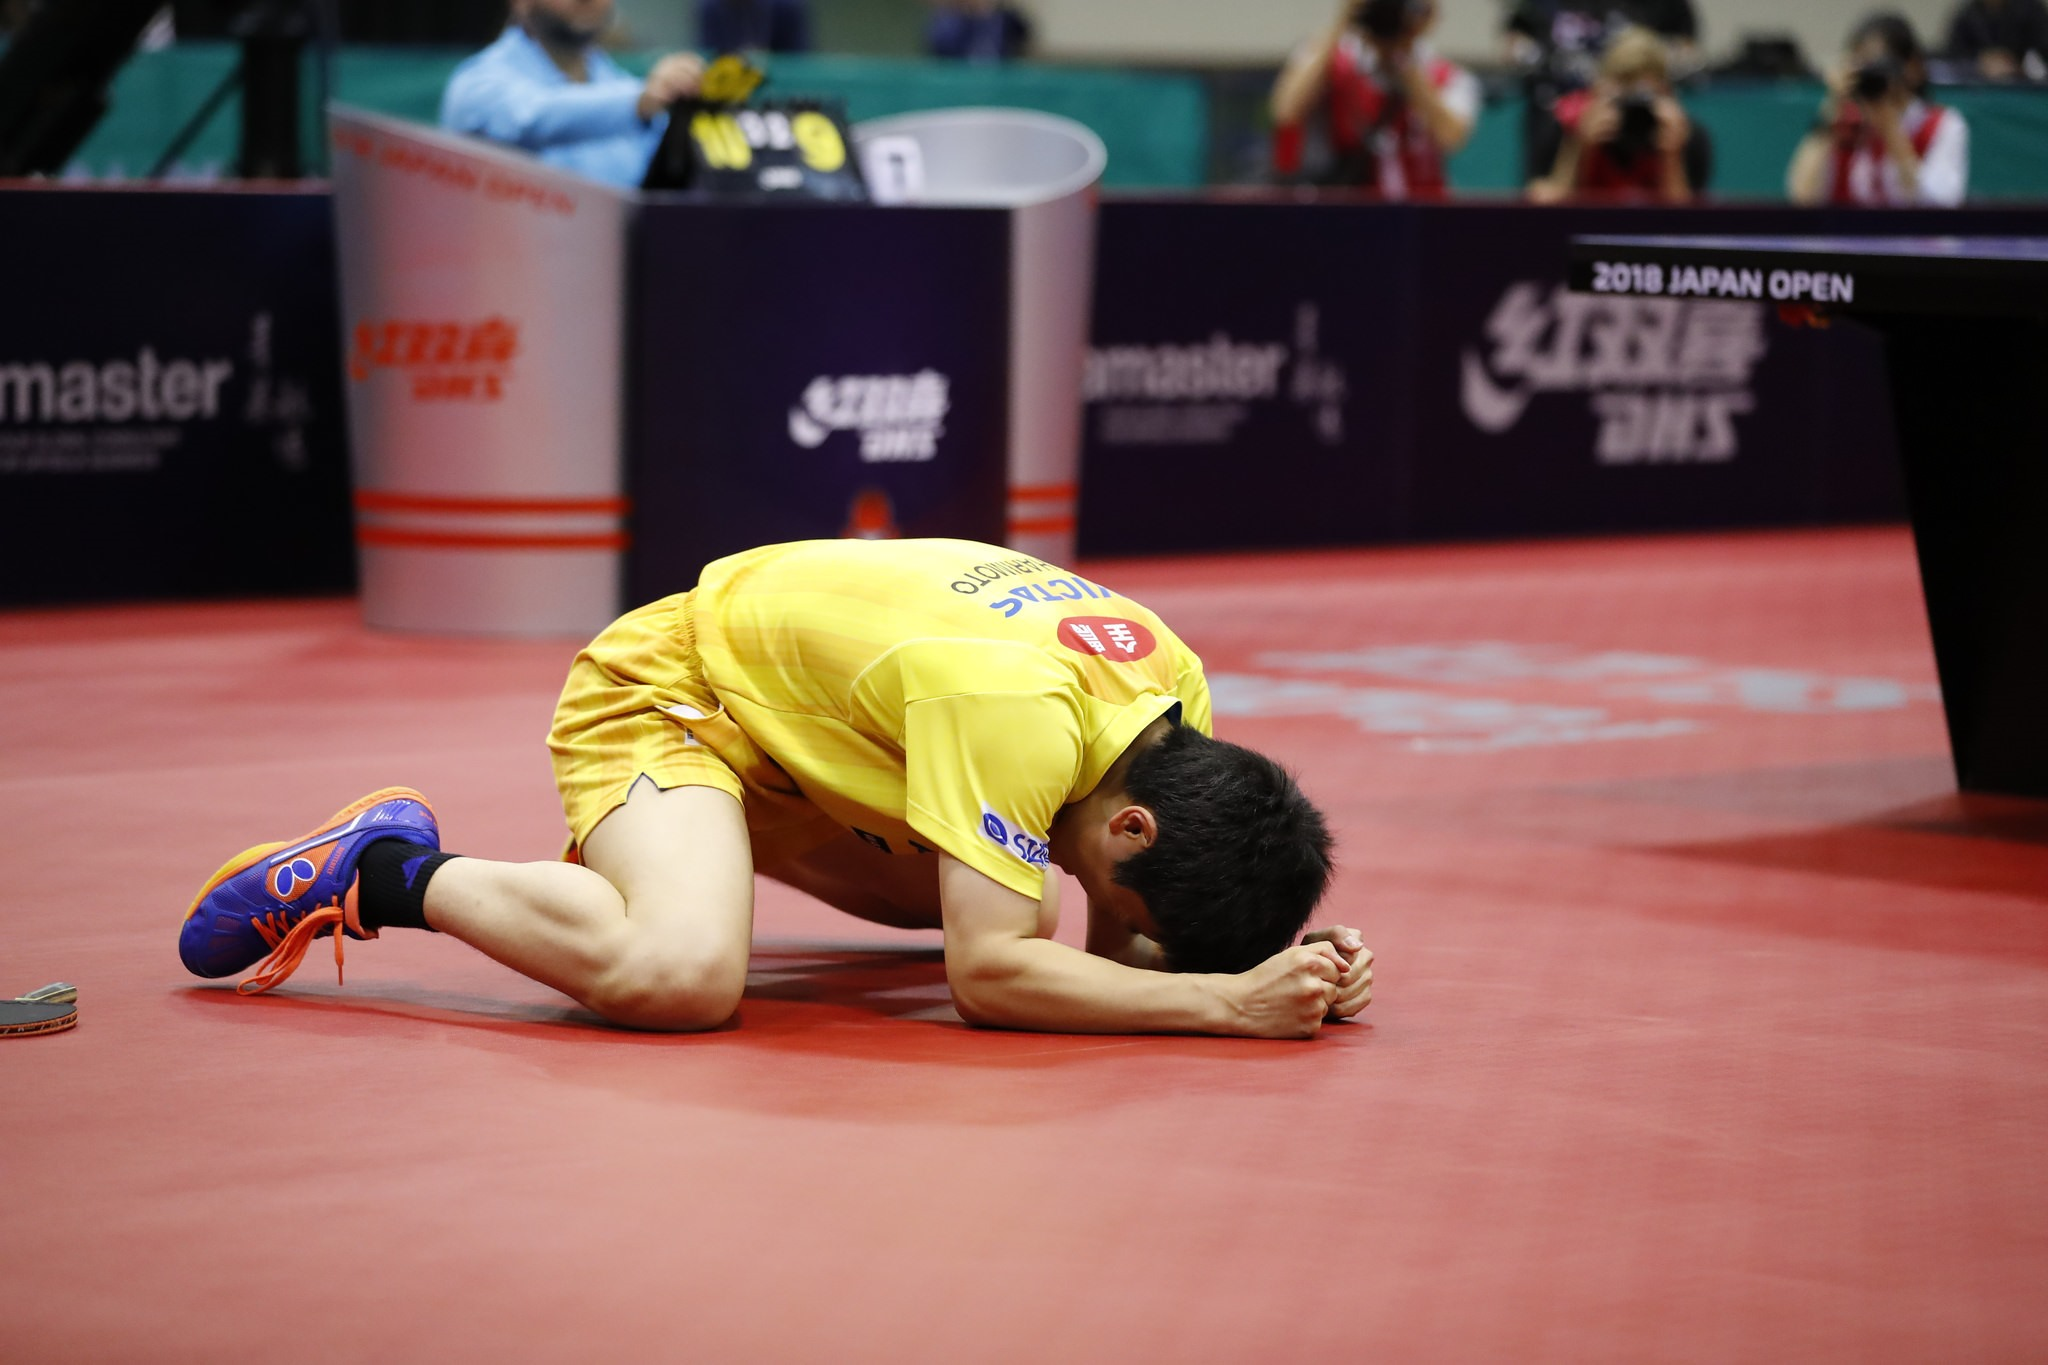 Japan Open: Harimoto on Top